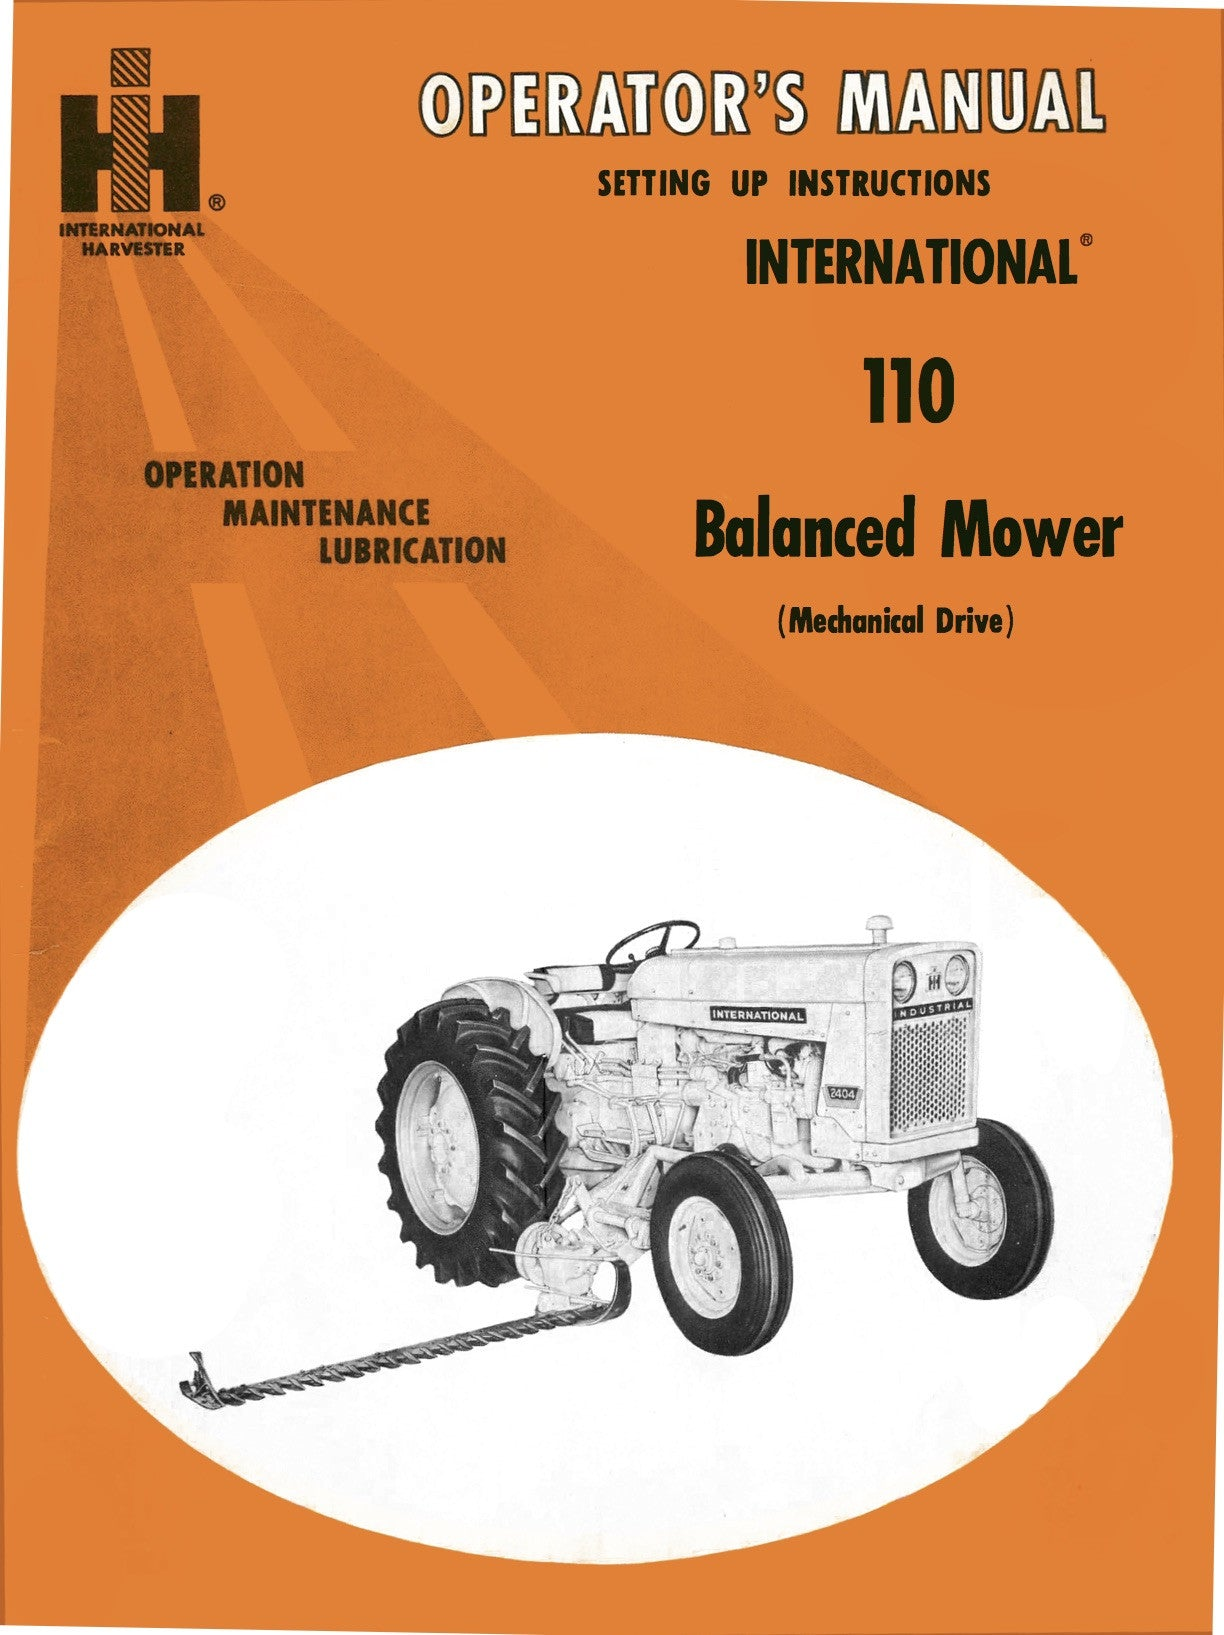 International_110_Balanced_Mower_Mechanical_Drive_Operator_s_Manua_1.jpeg?v=1462479691